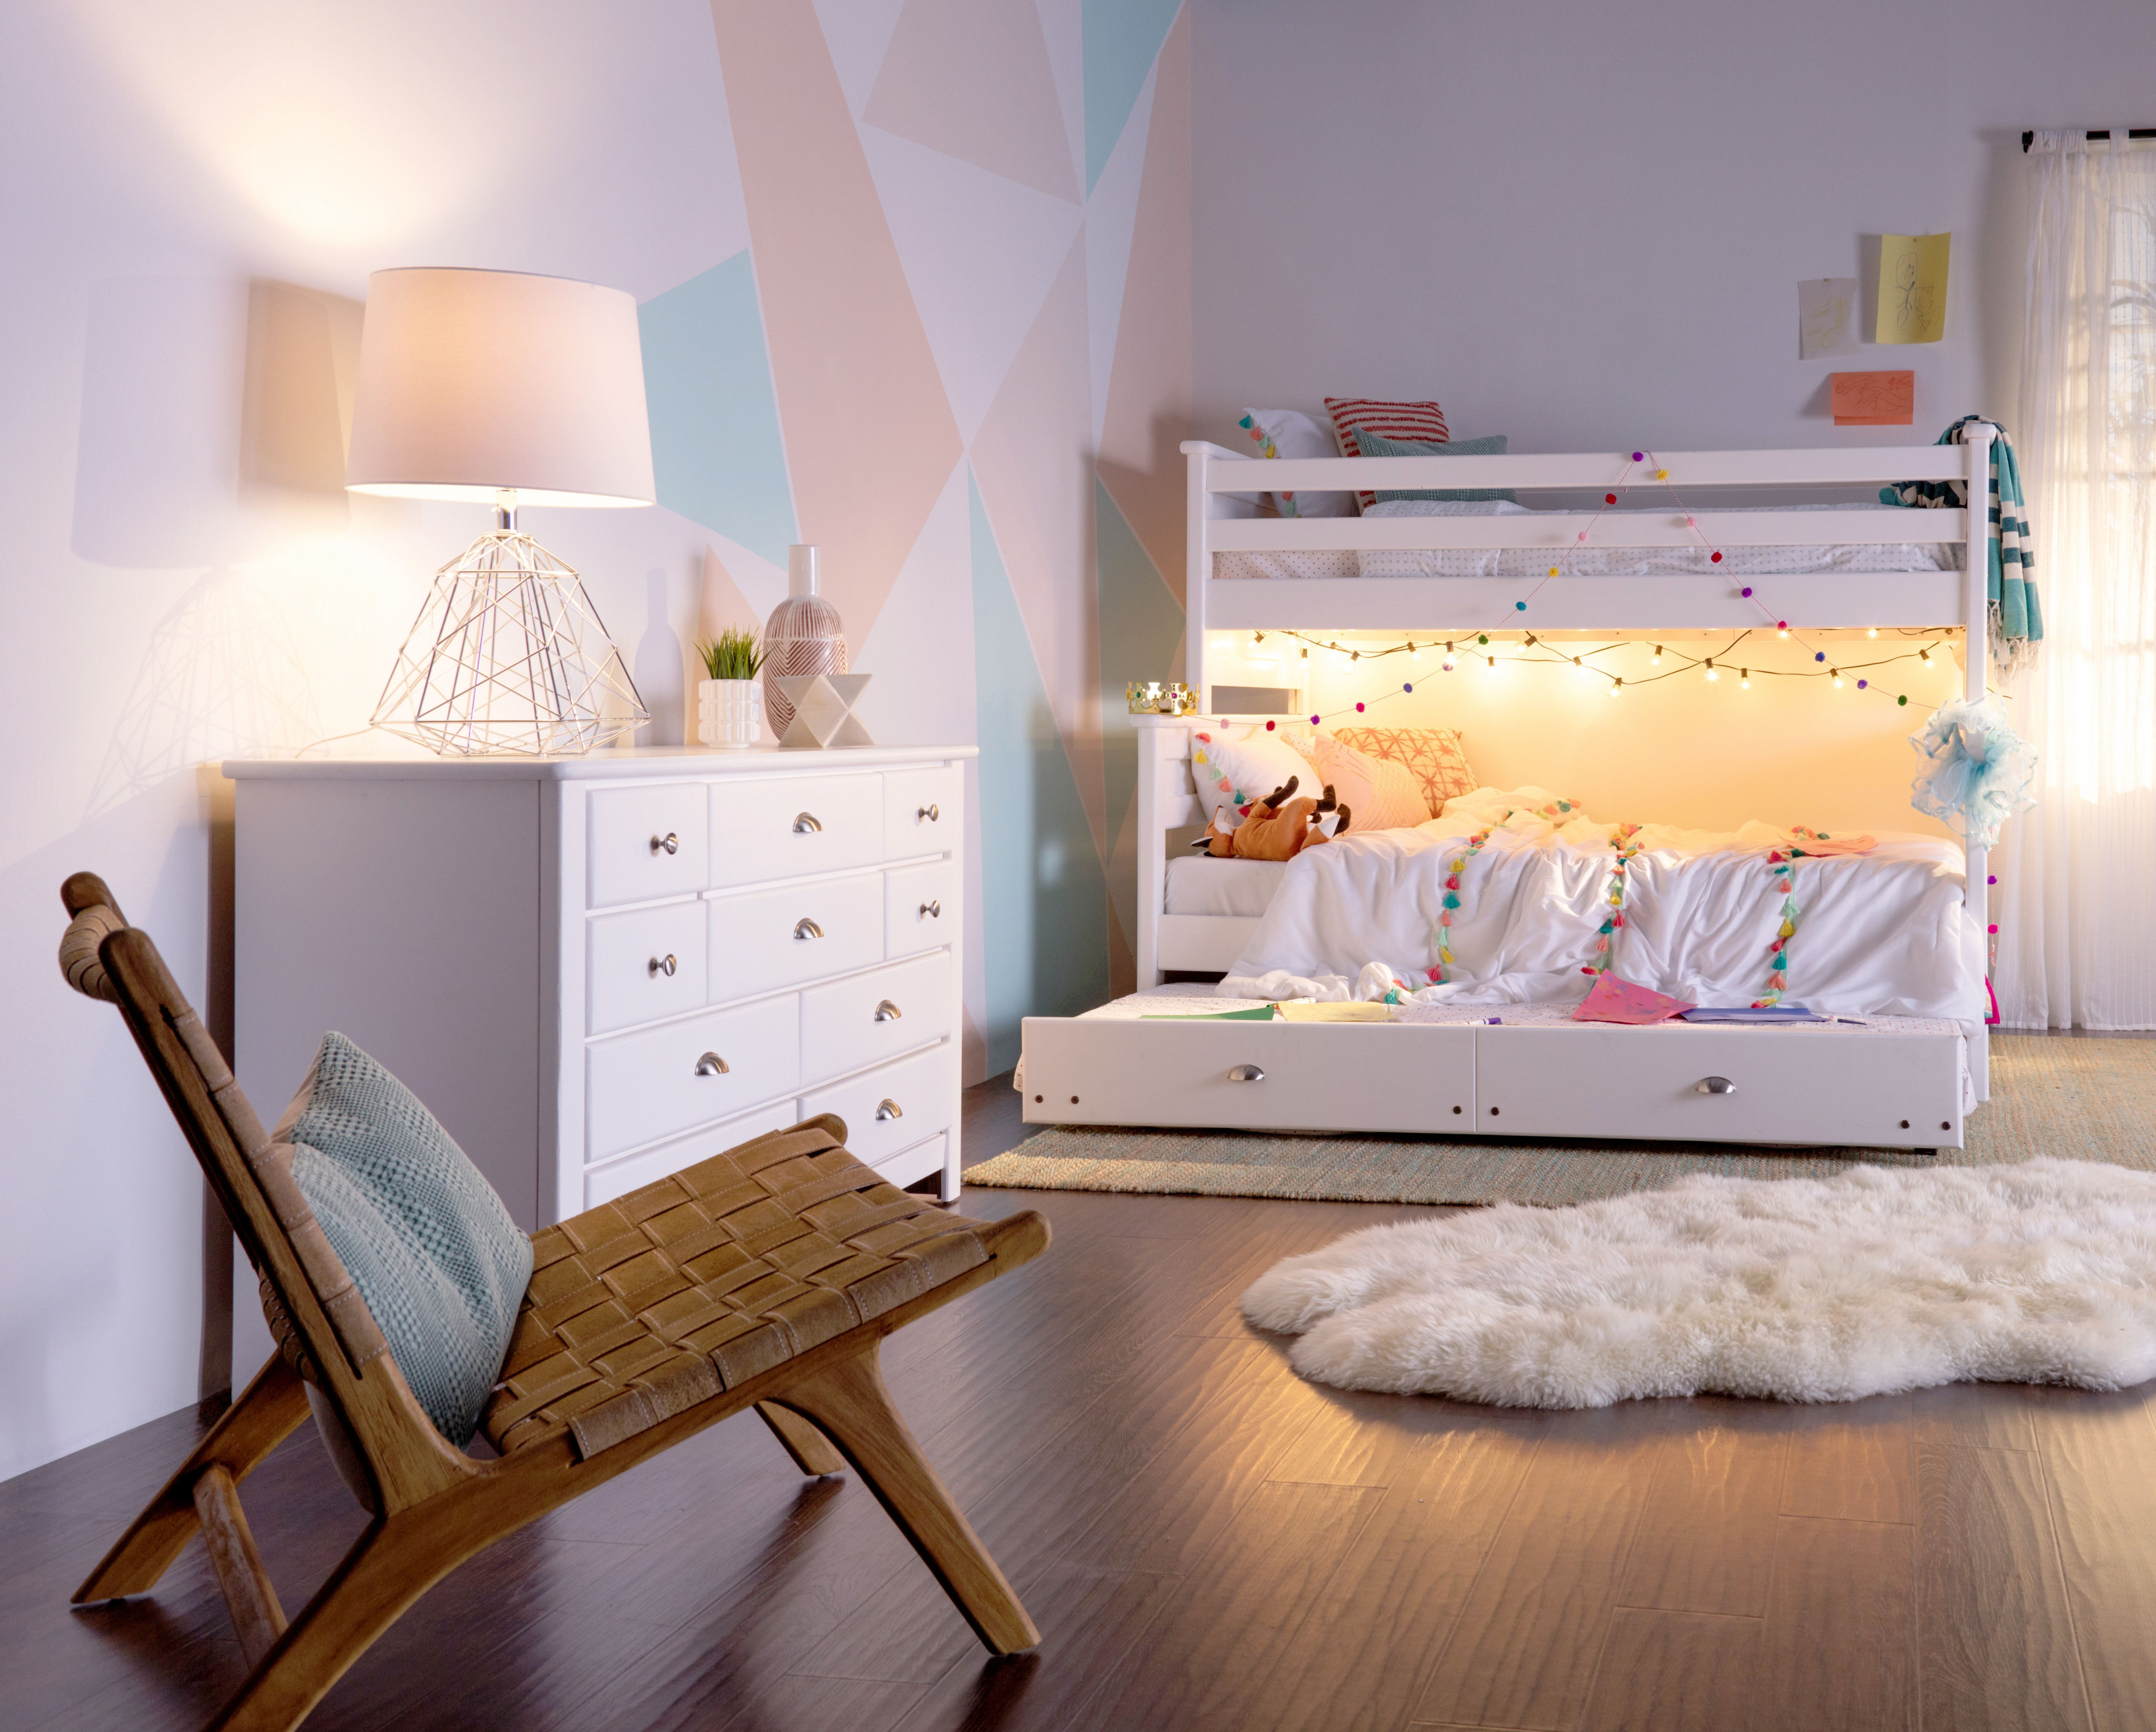 furniture s child creative with build slide home design metal loft to how bed image black of